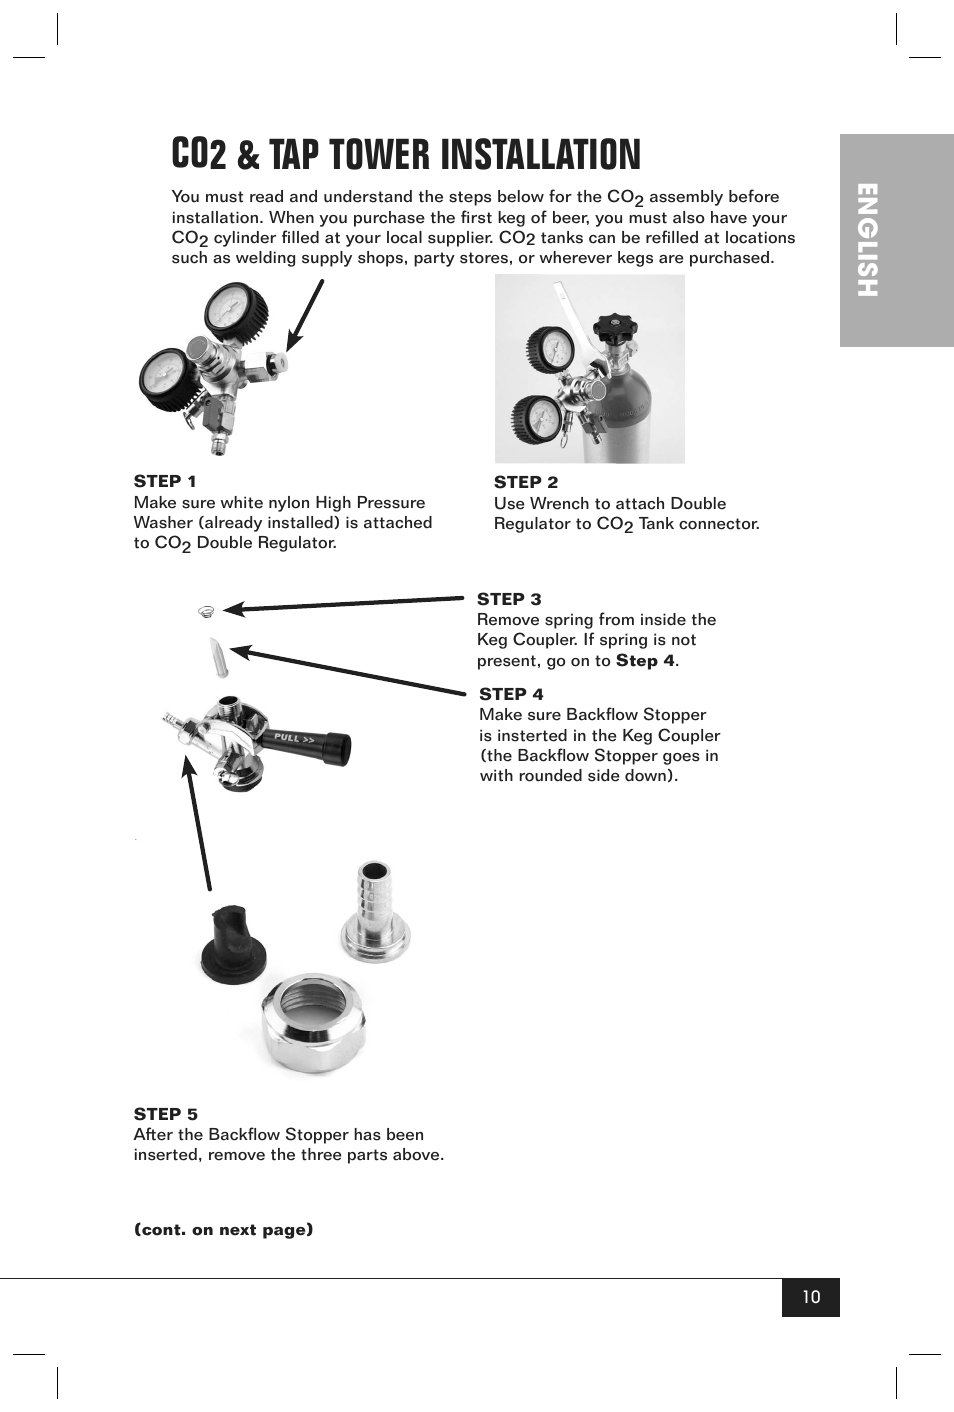 hight resolution of co2 tap tower installation english nostalgia electrics krs 2150 user manual page 12 20